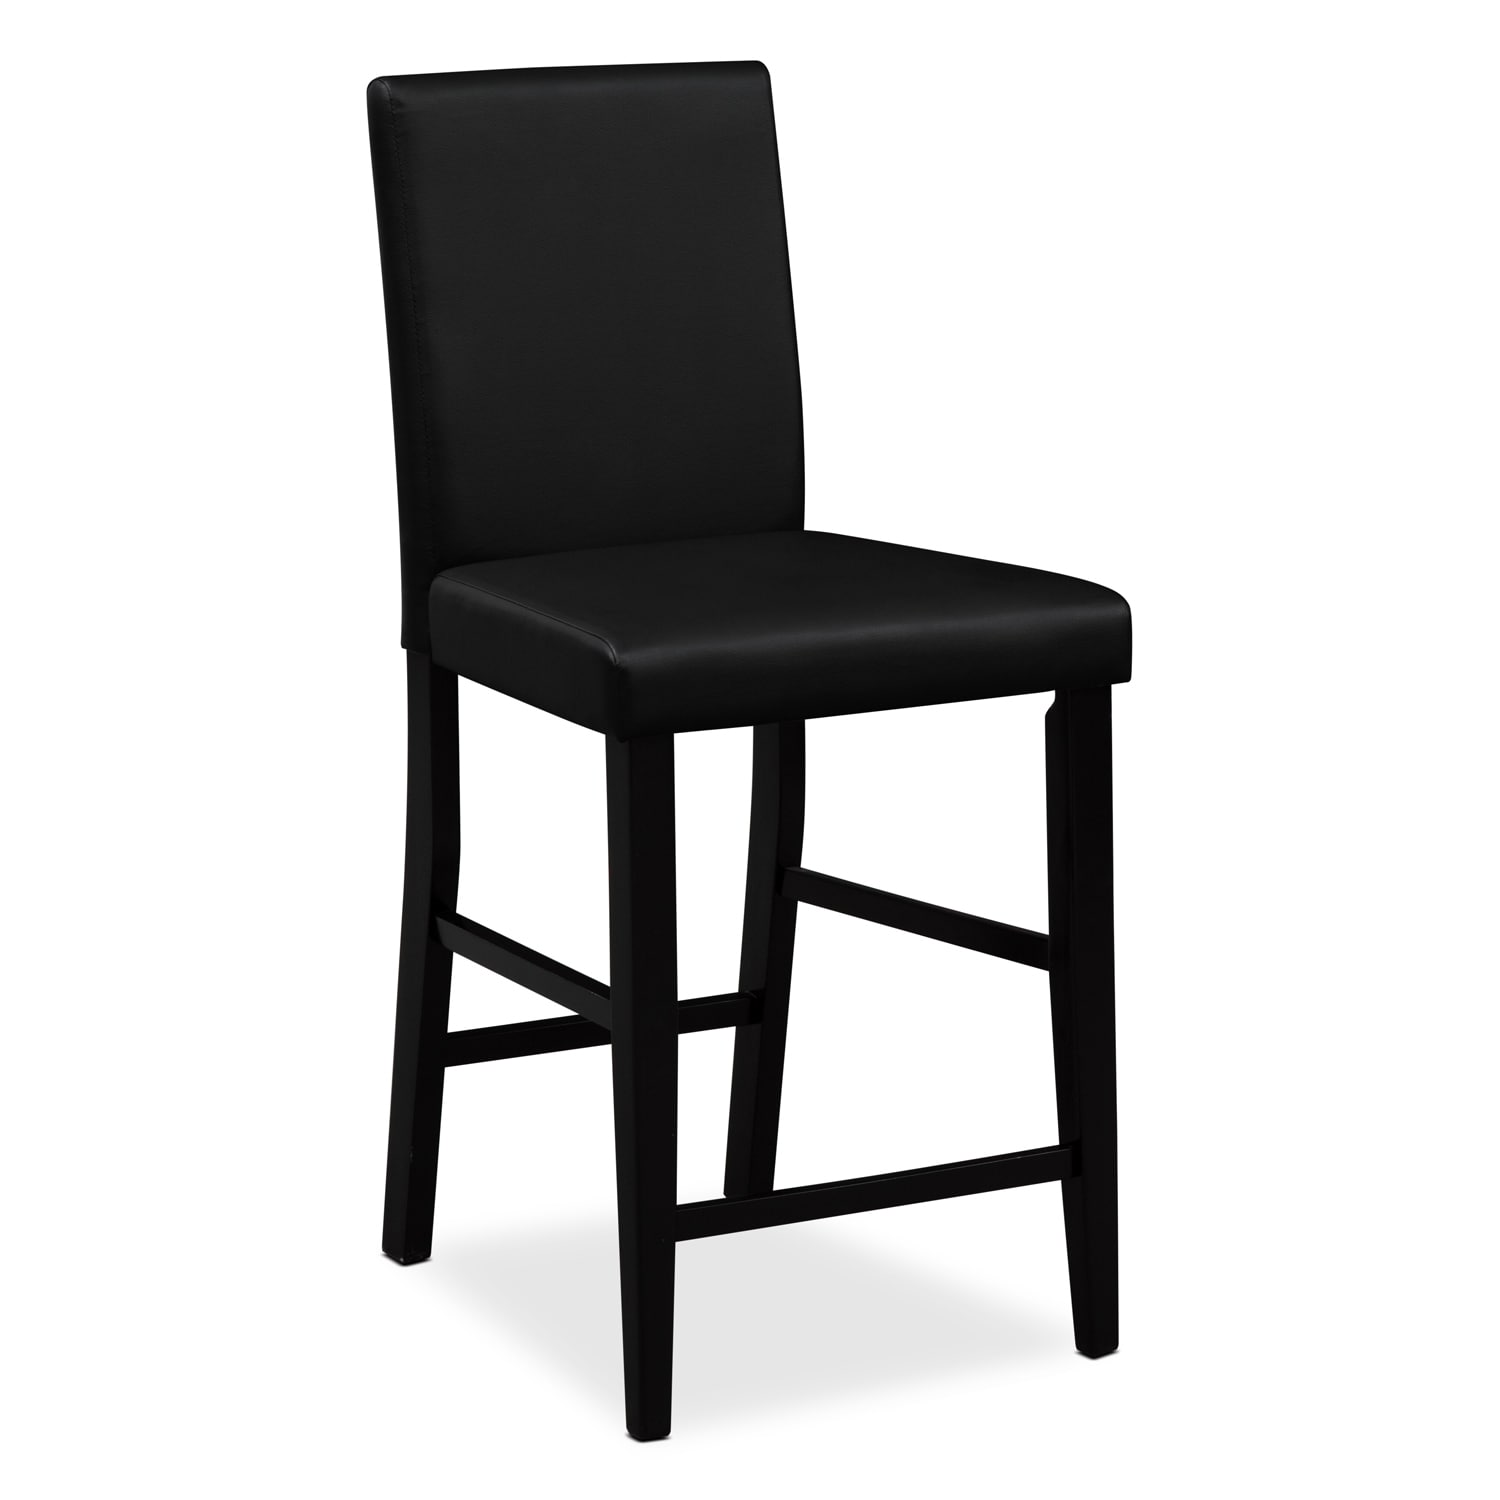 black bar stool chairs adirondack chair footstool plans shadow counter height value city furniture